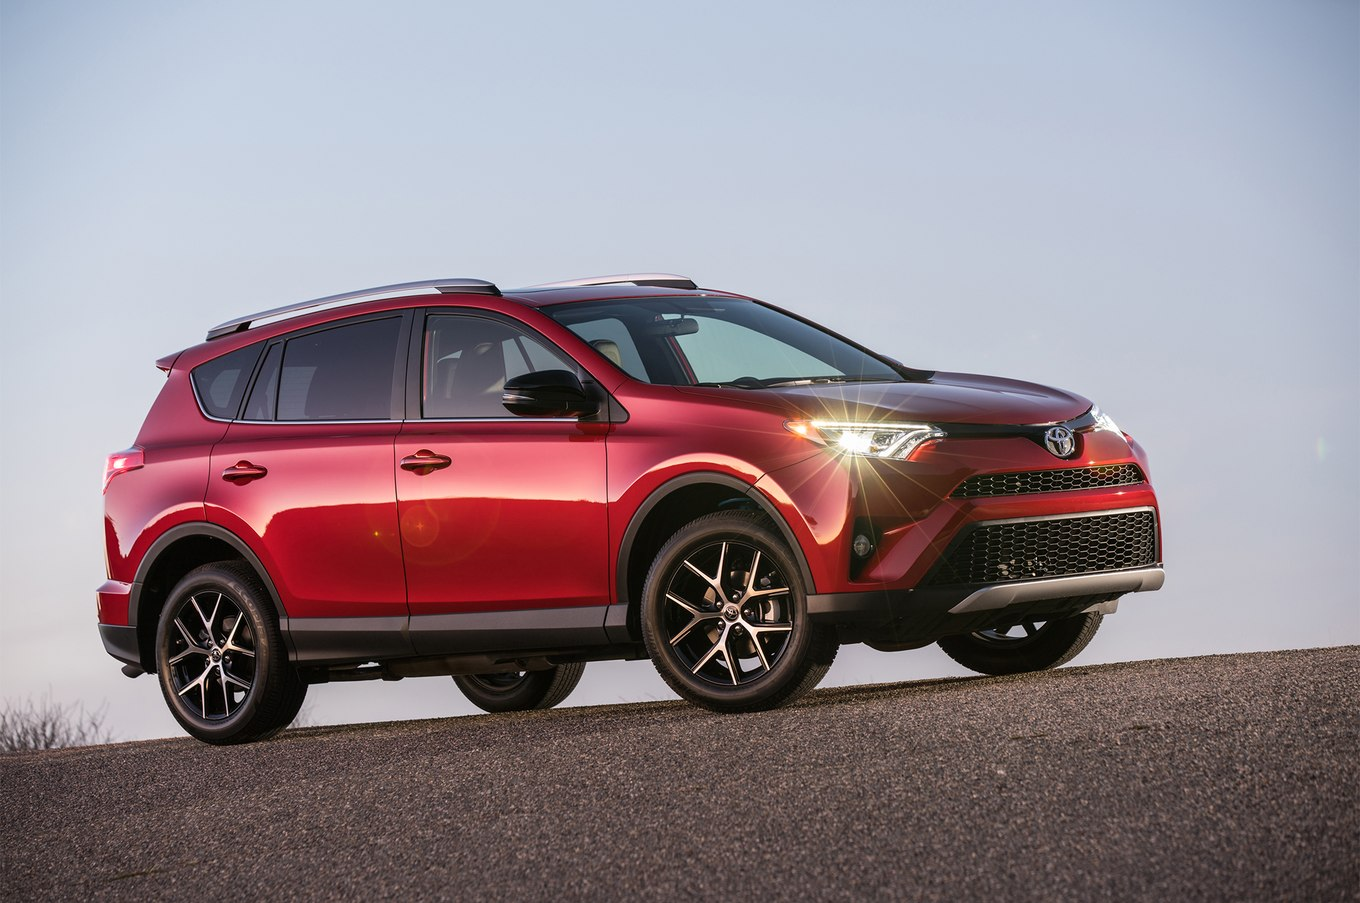 Toyota rav4 photo - 1